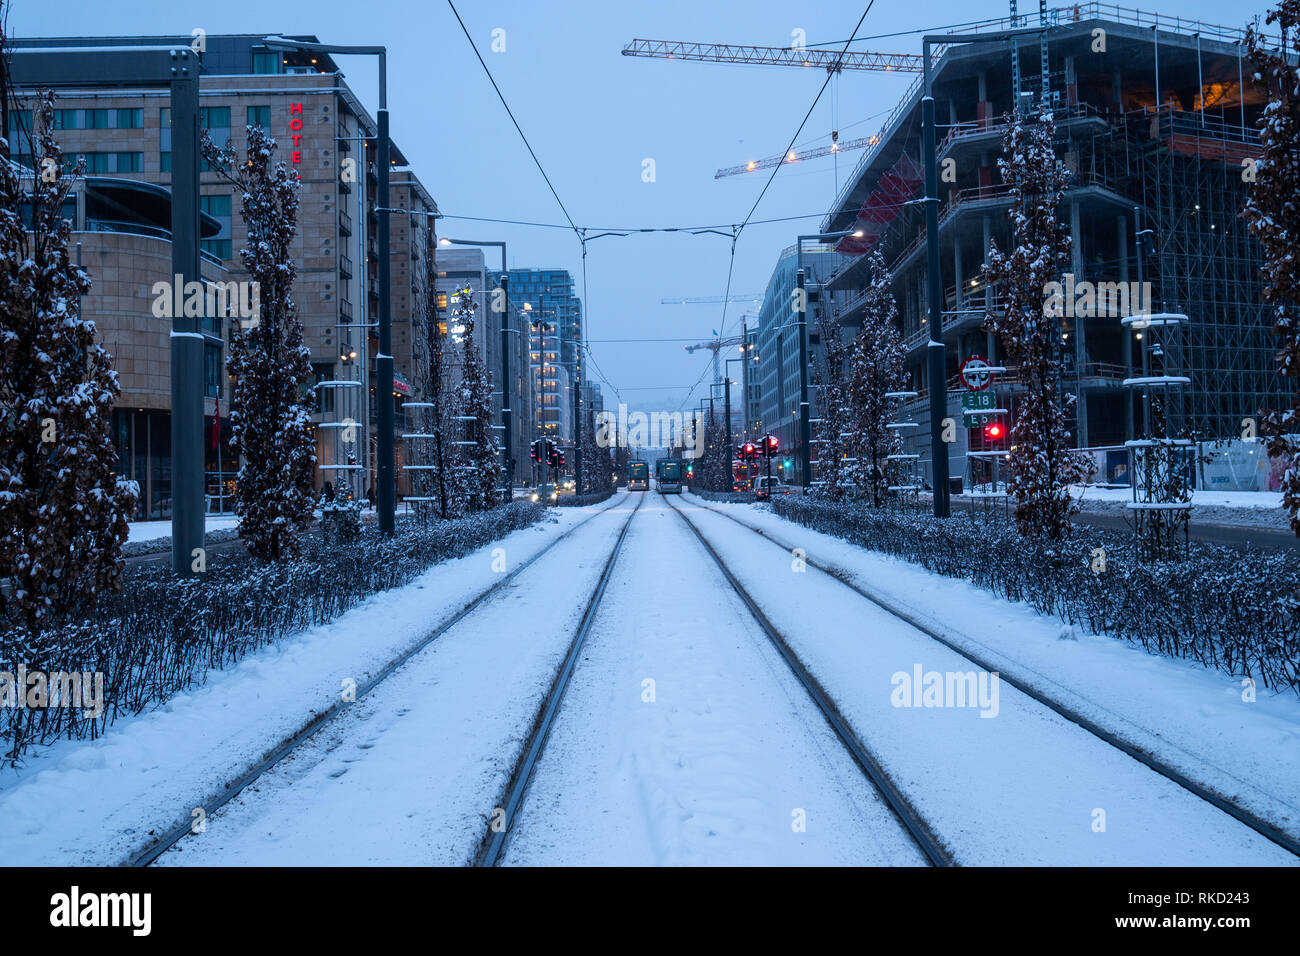 Symmetric tram tracks in Dronning Eufemias gate in central Oslo - Stock Image